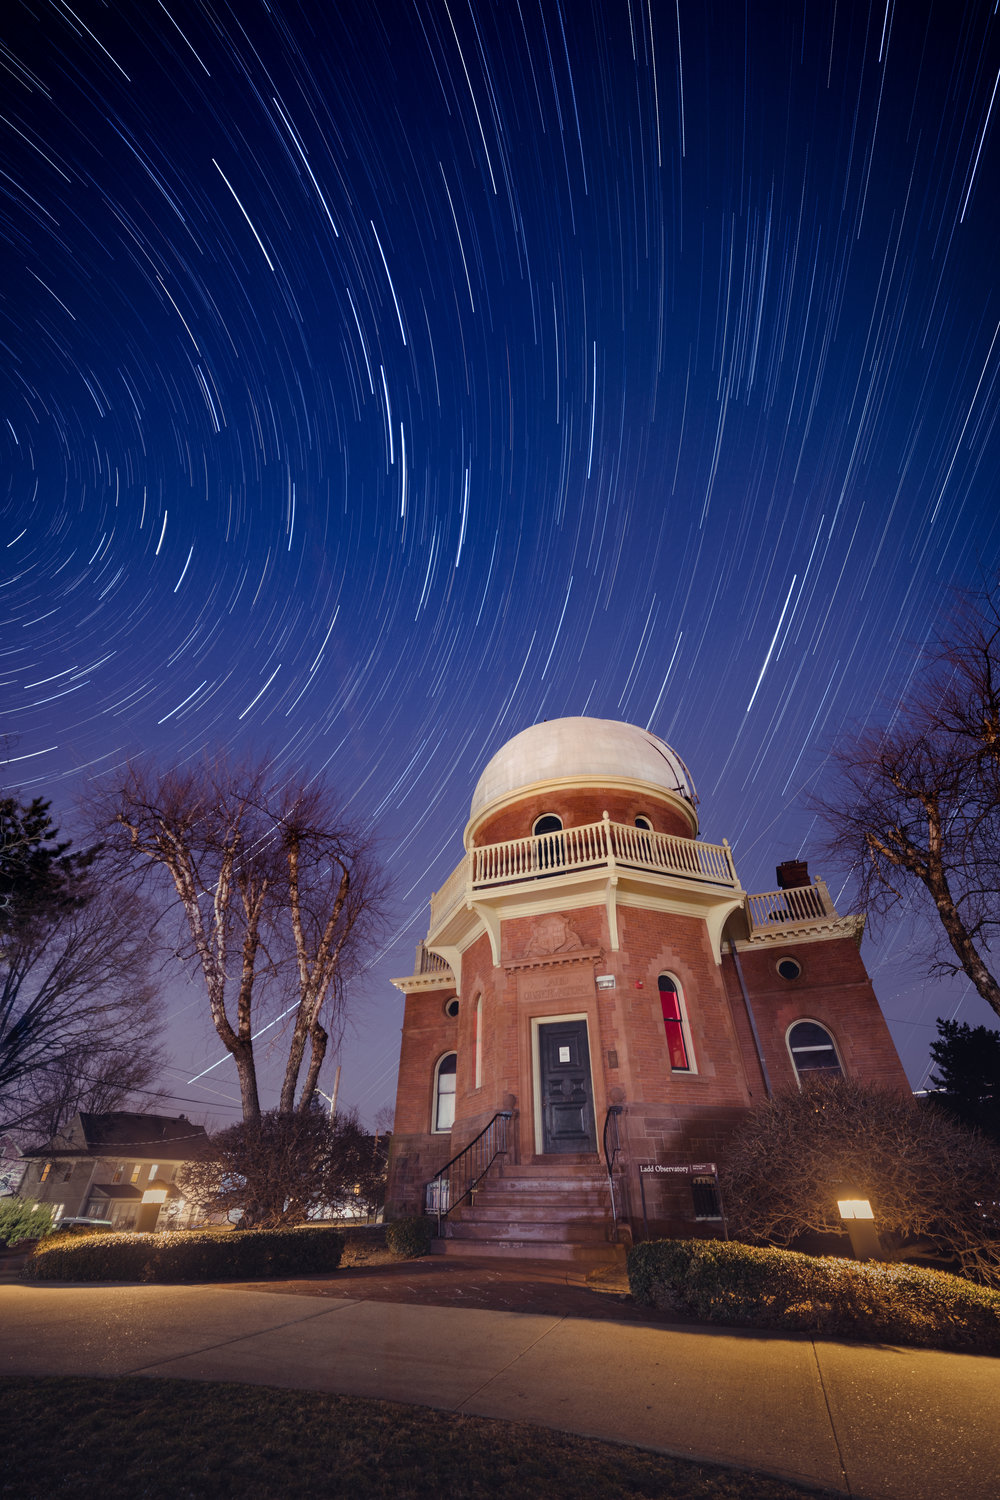 Star trails over Ladd Observatory.